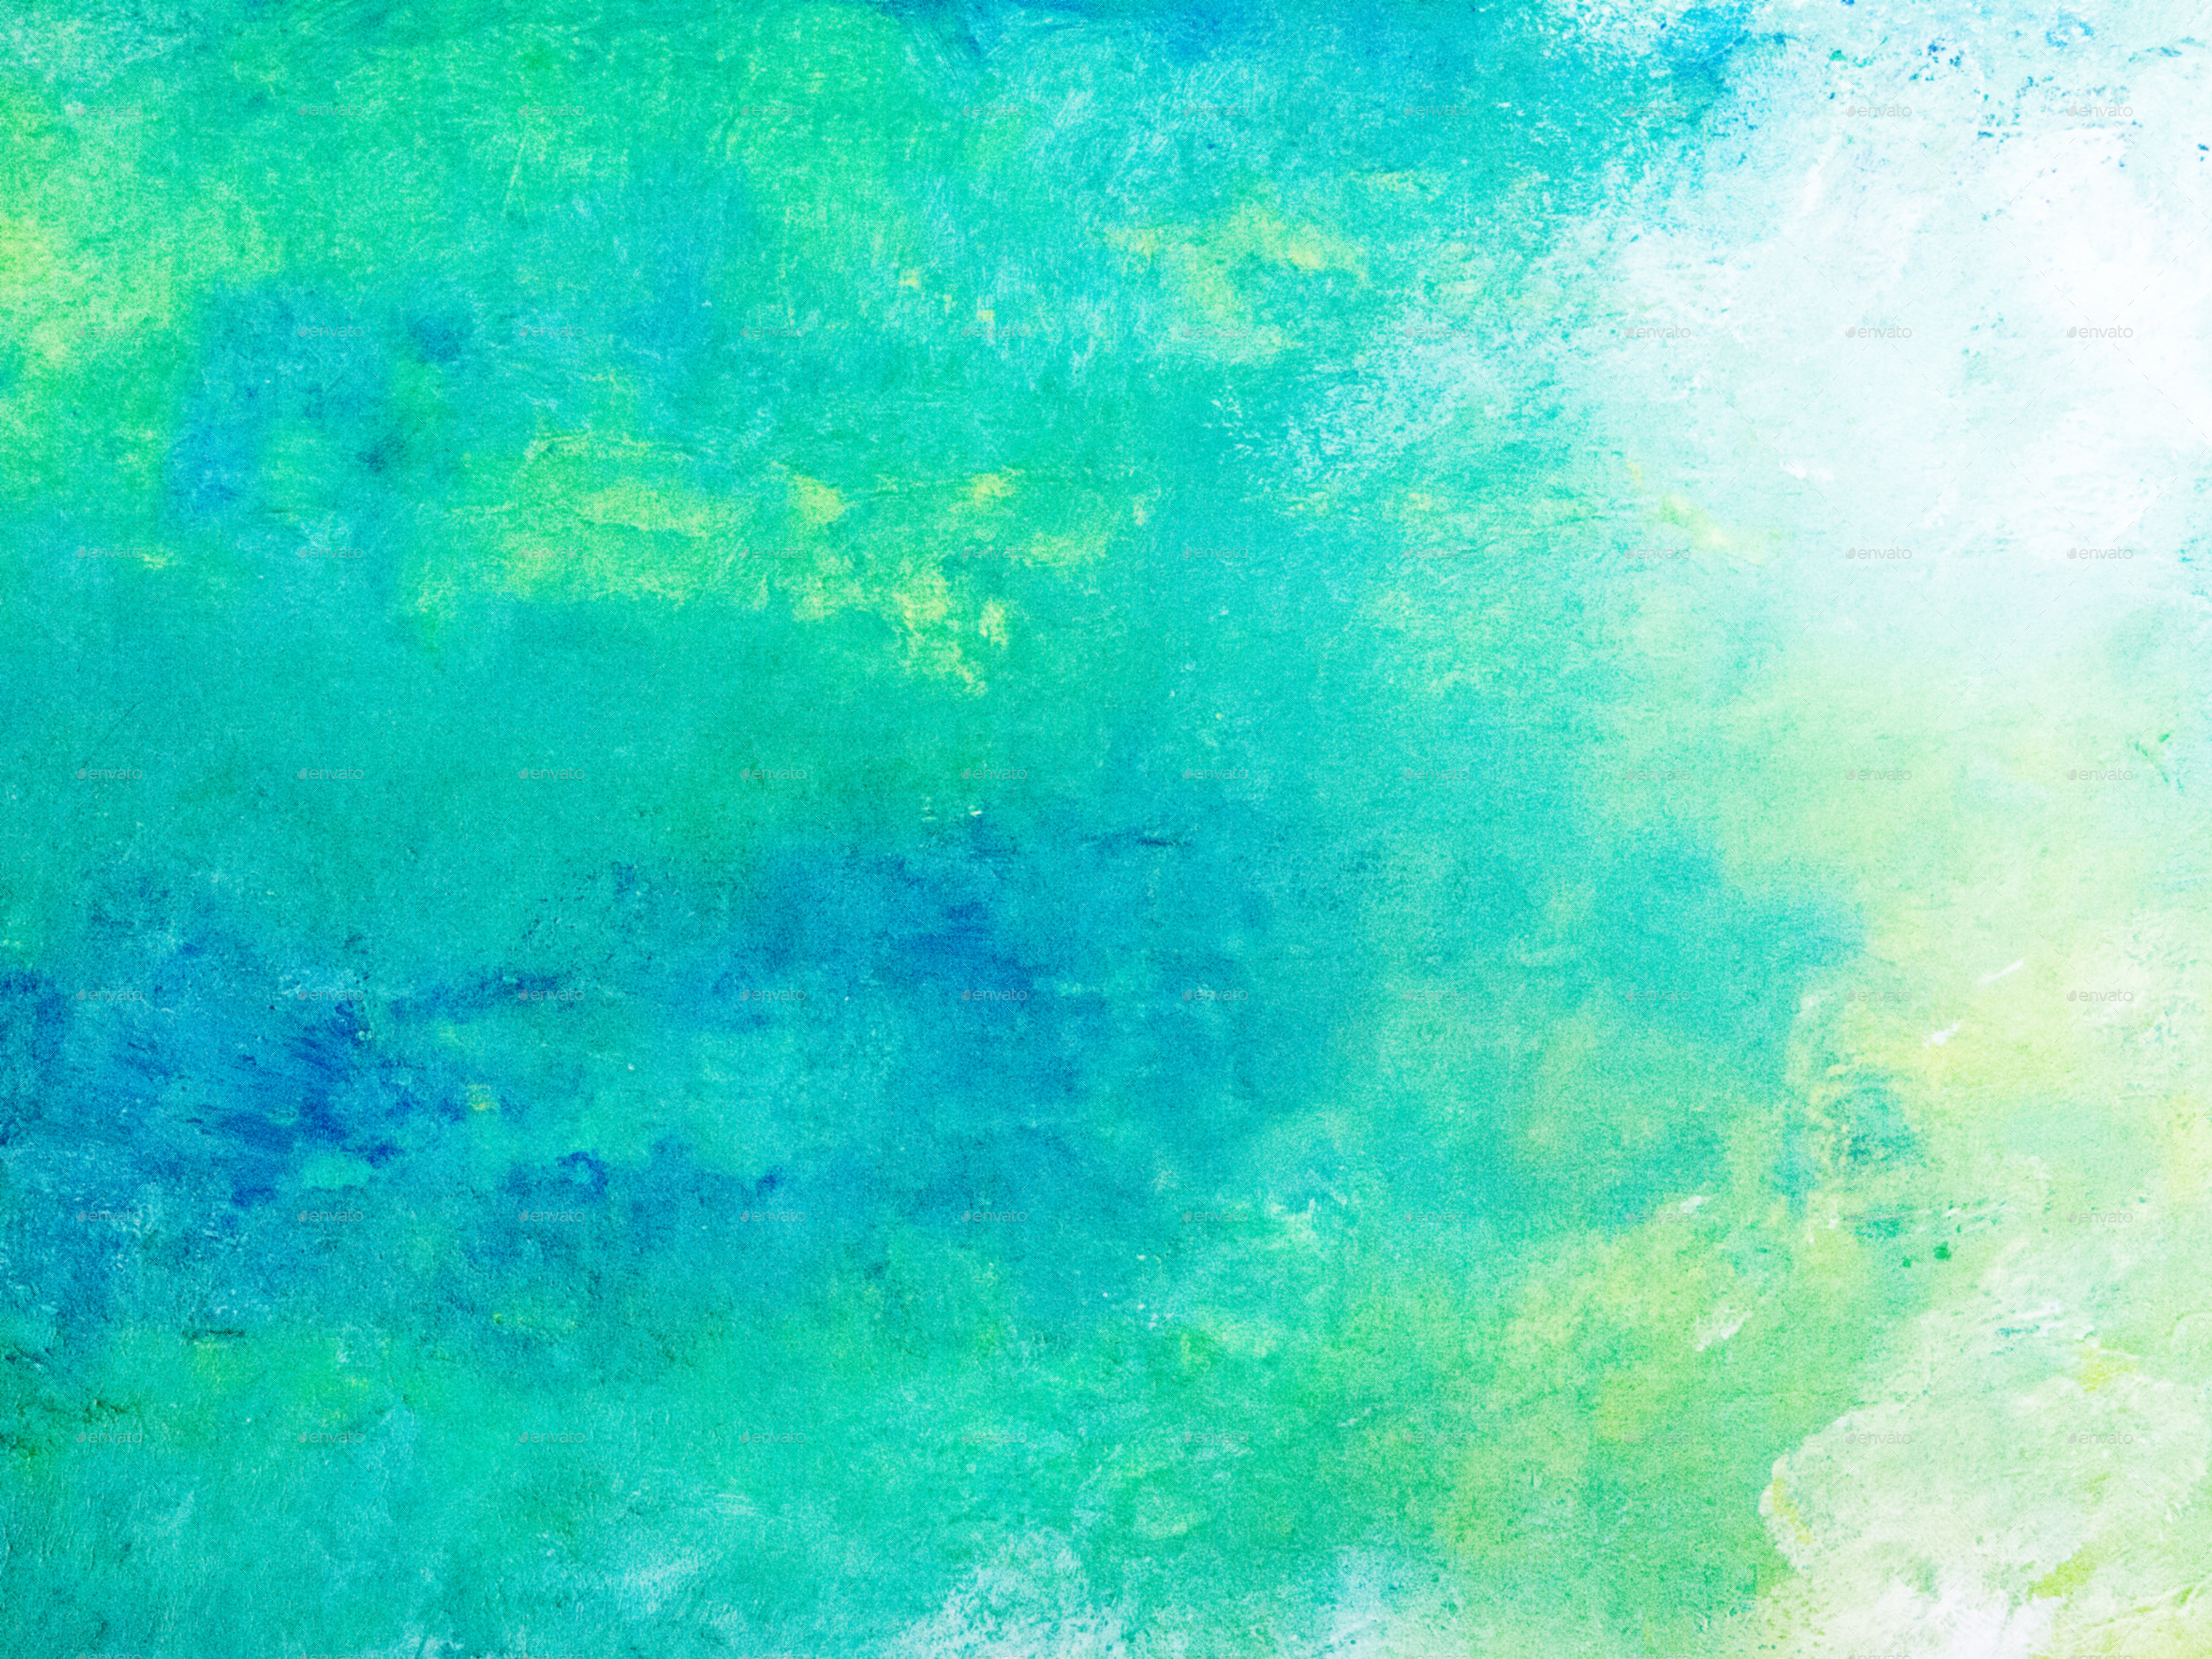 Free photo: Painted Background - Abstract, Painted, Image ...